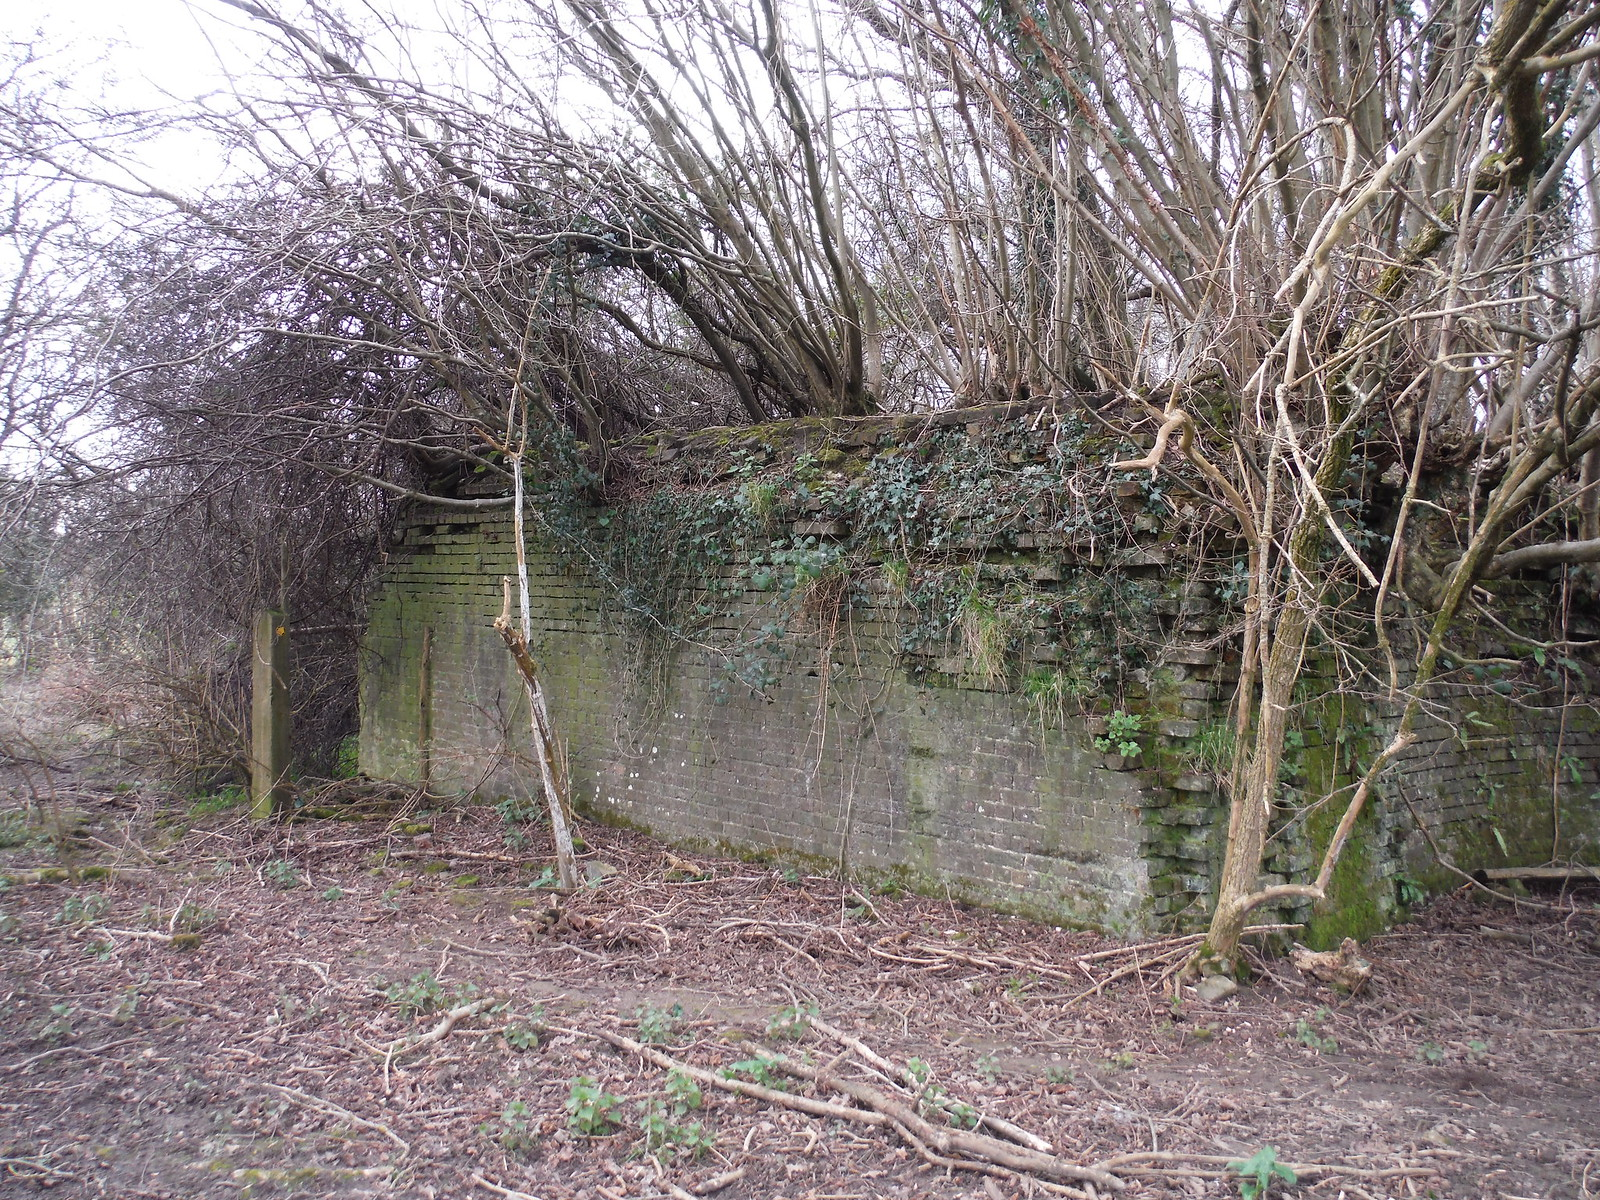 Buttressed bridge remnants of the - never finished - Ouse Valley Railway SWC Walk 262 Uckfield to Buxted